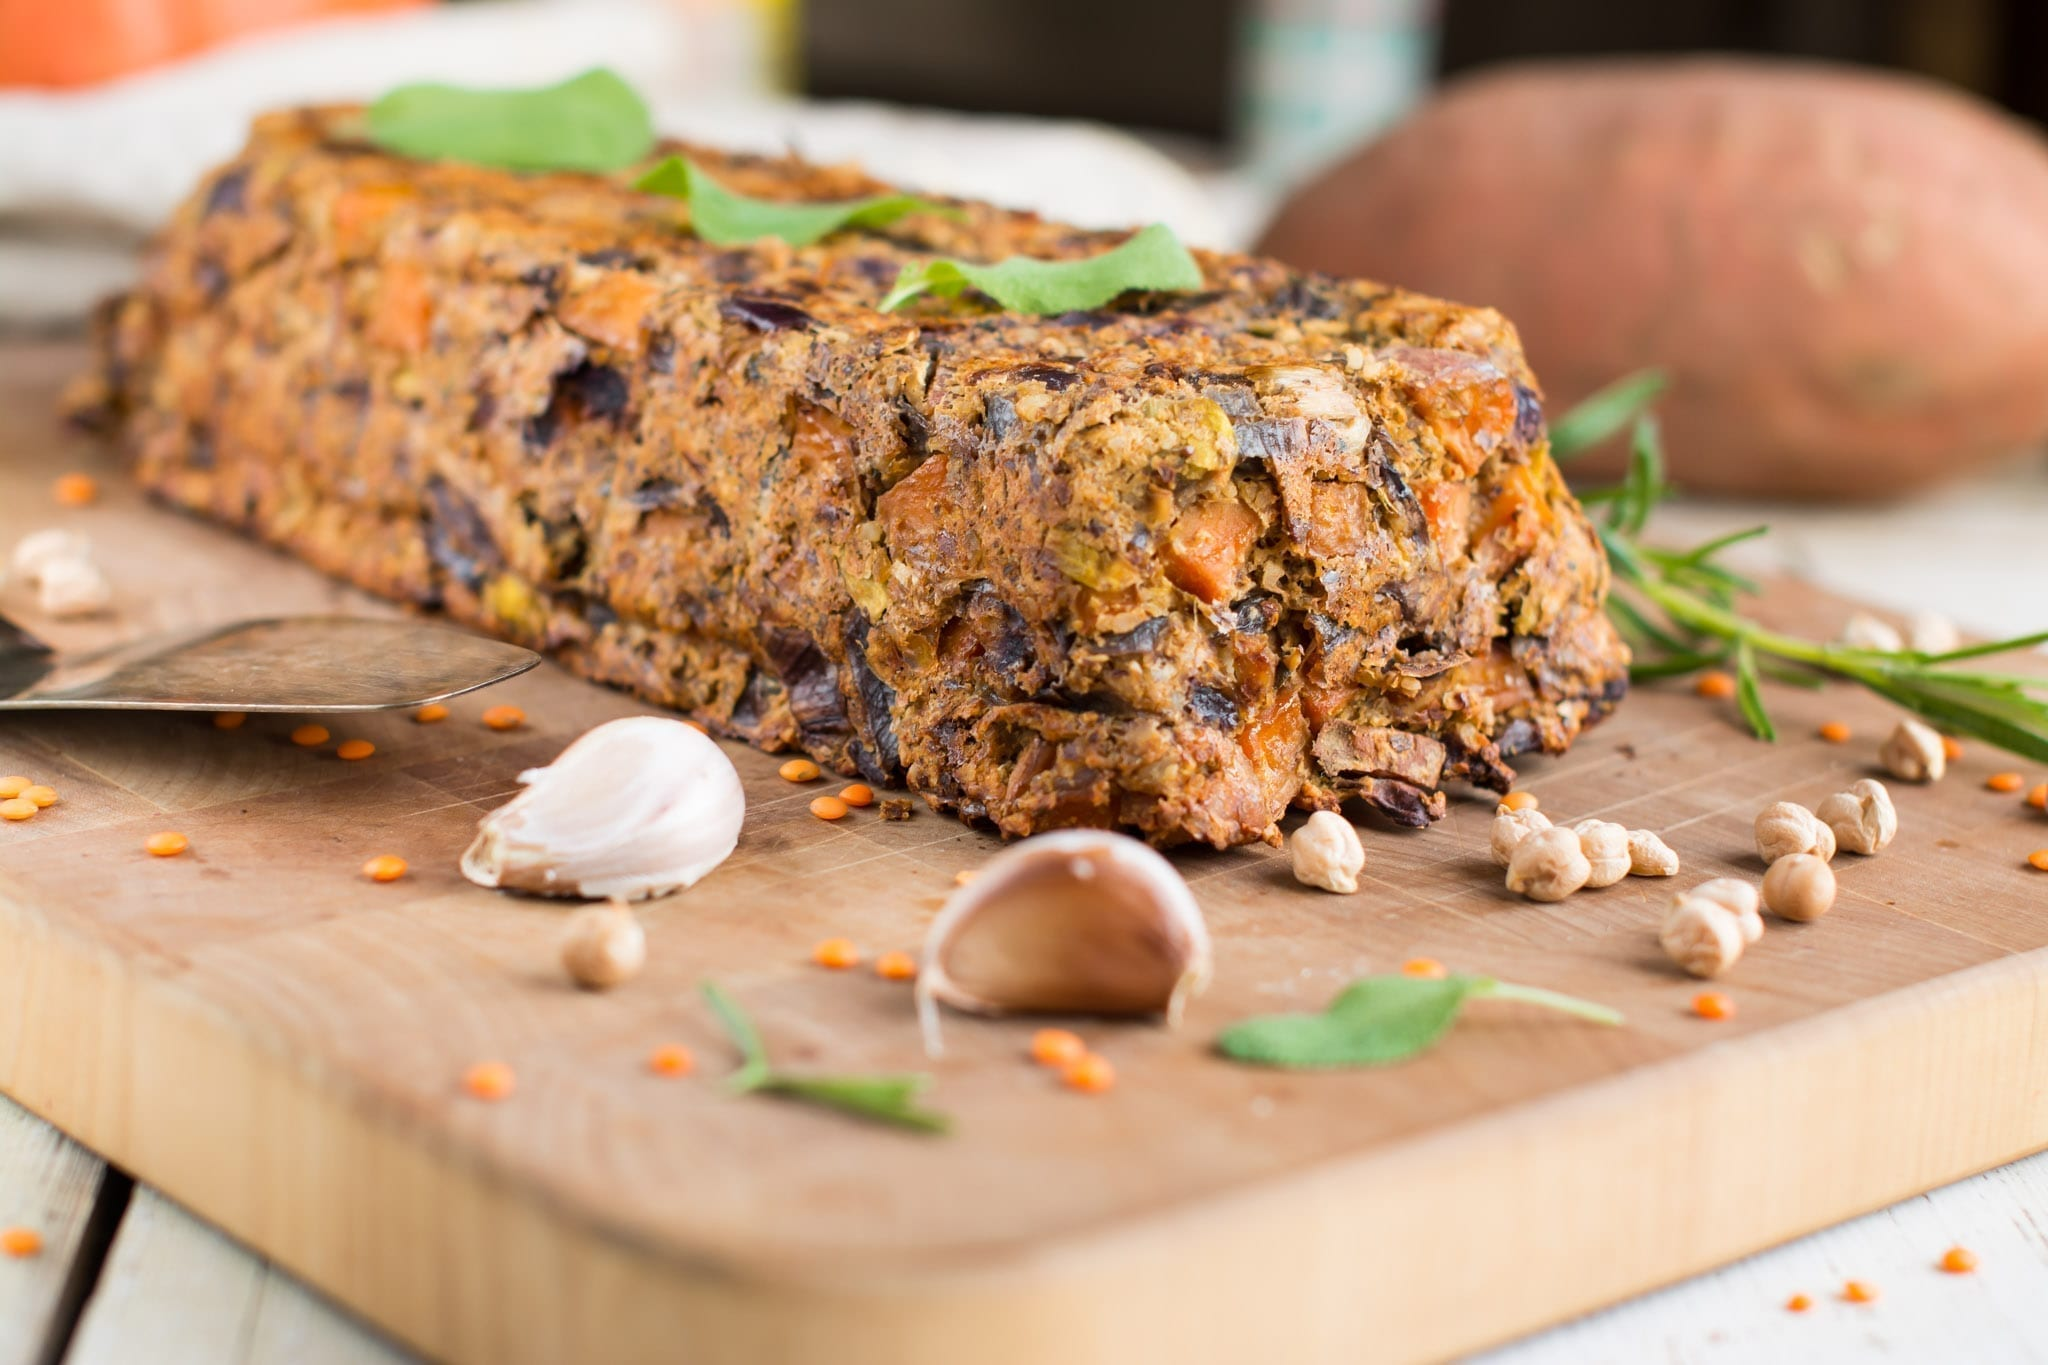 Lentil loaf with potatoes and nuts